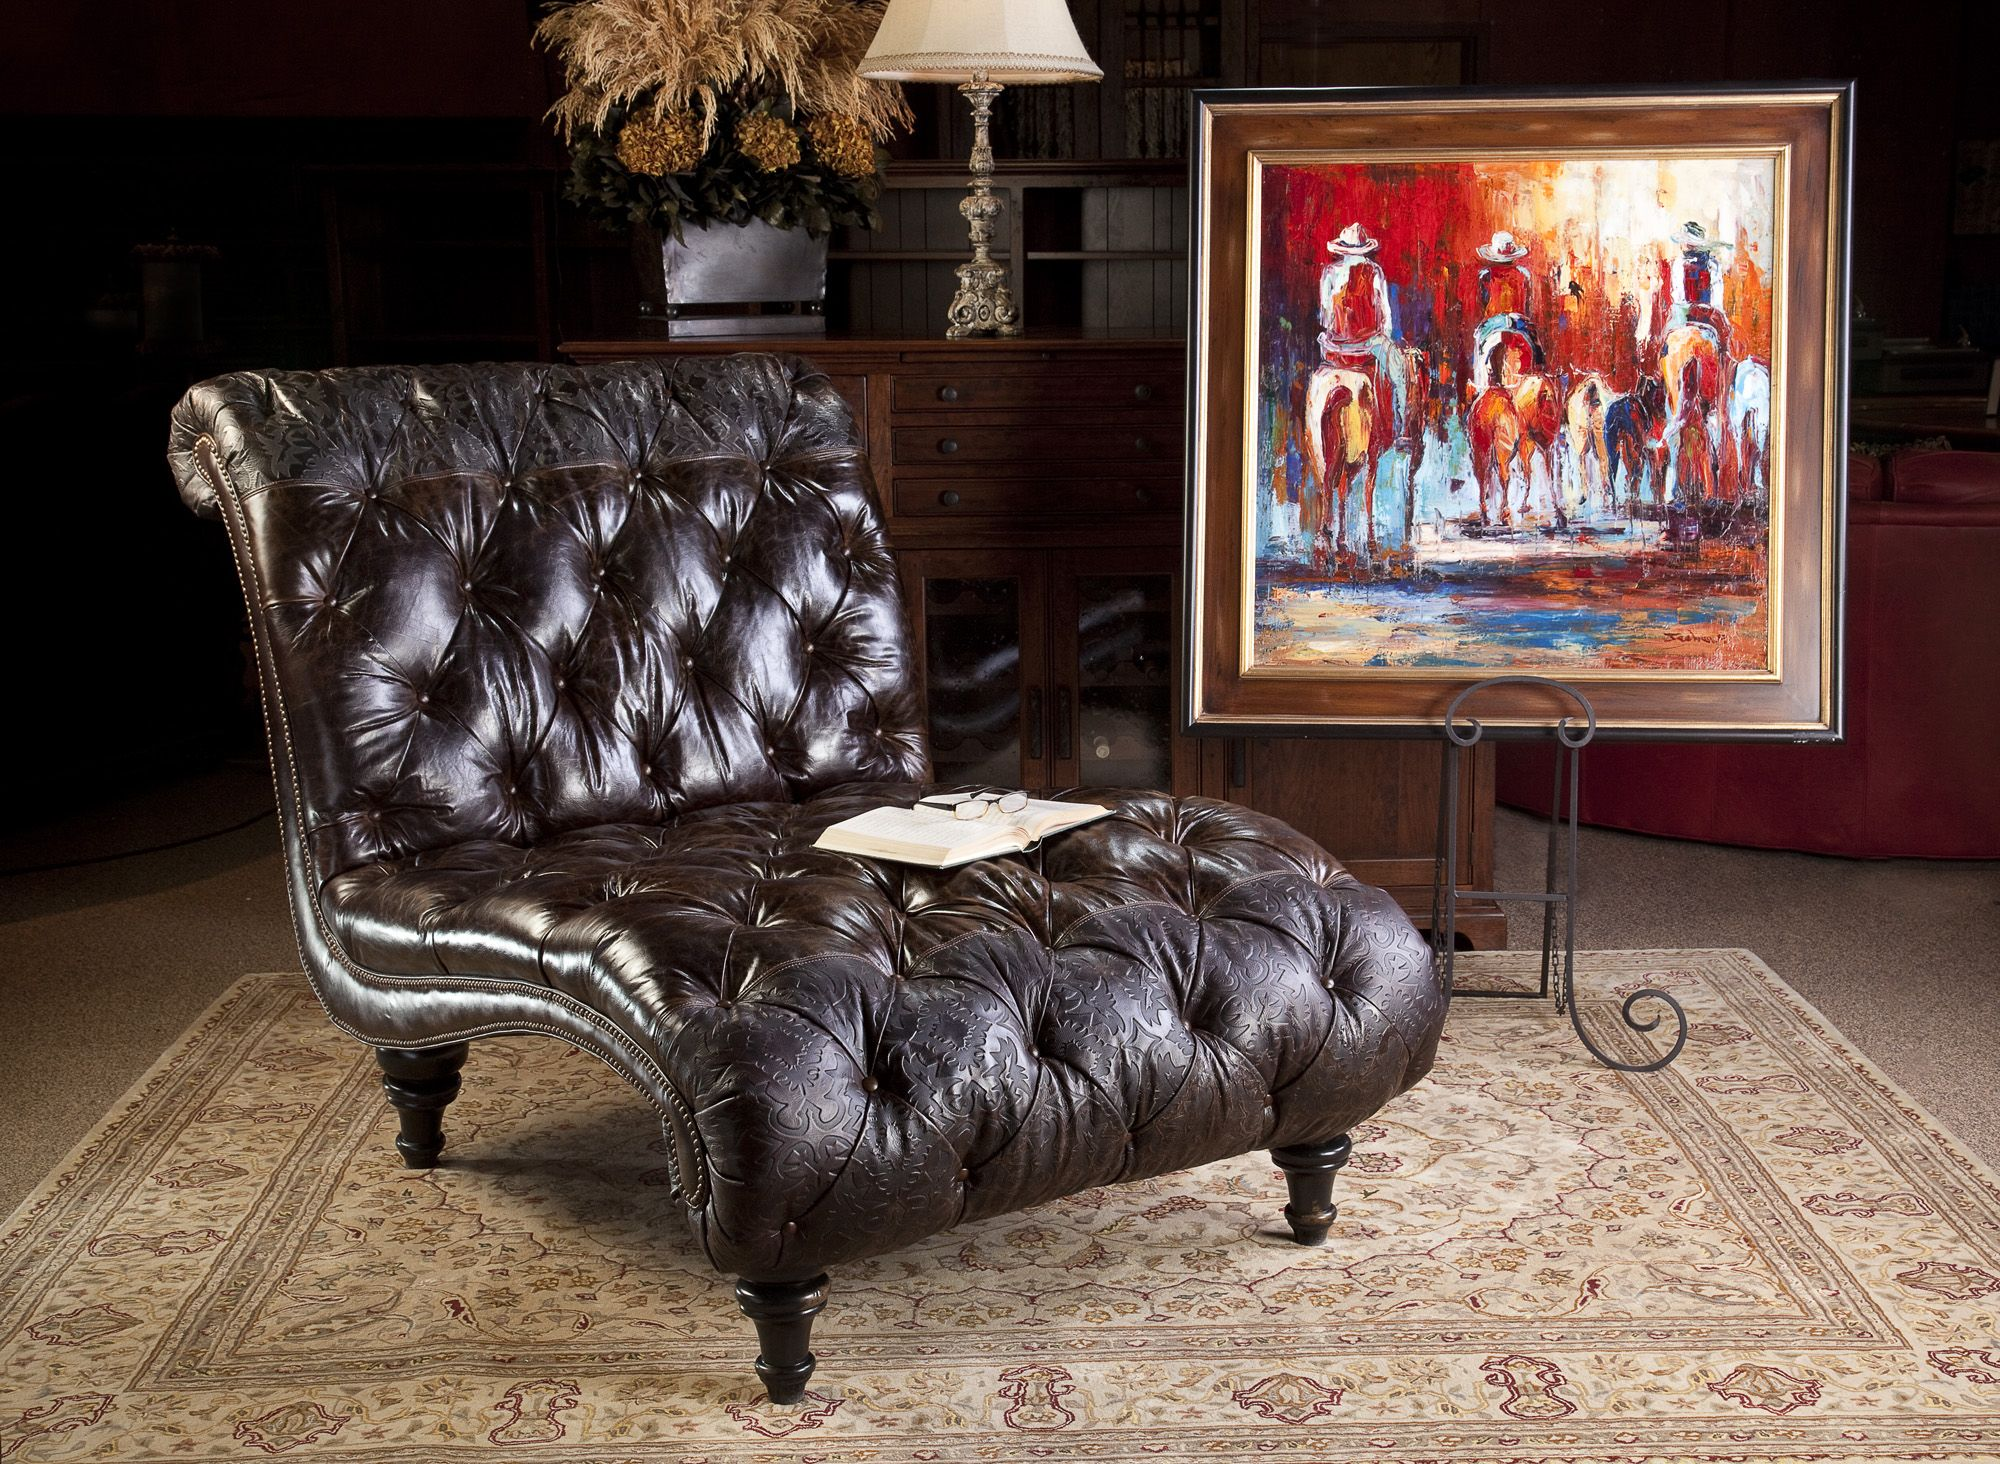 Tufted Leather Chaise Western Elegance Equestrian Art All At Brumbaugh 39 S 817 244 9377 Dream